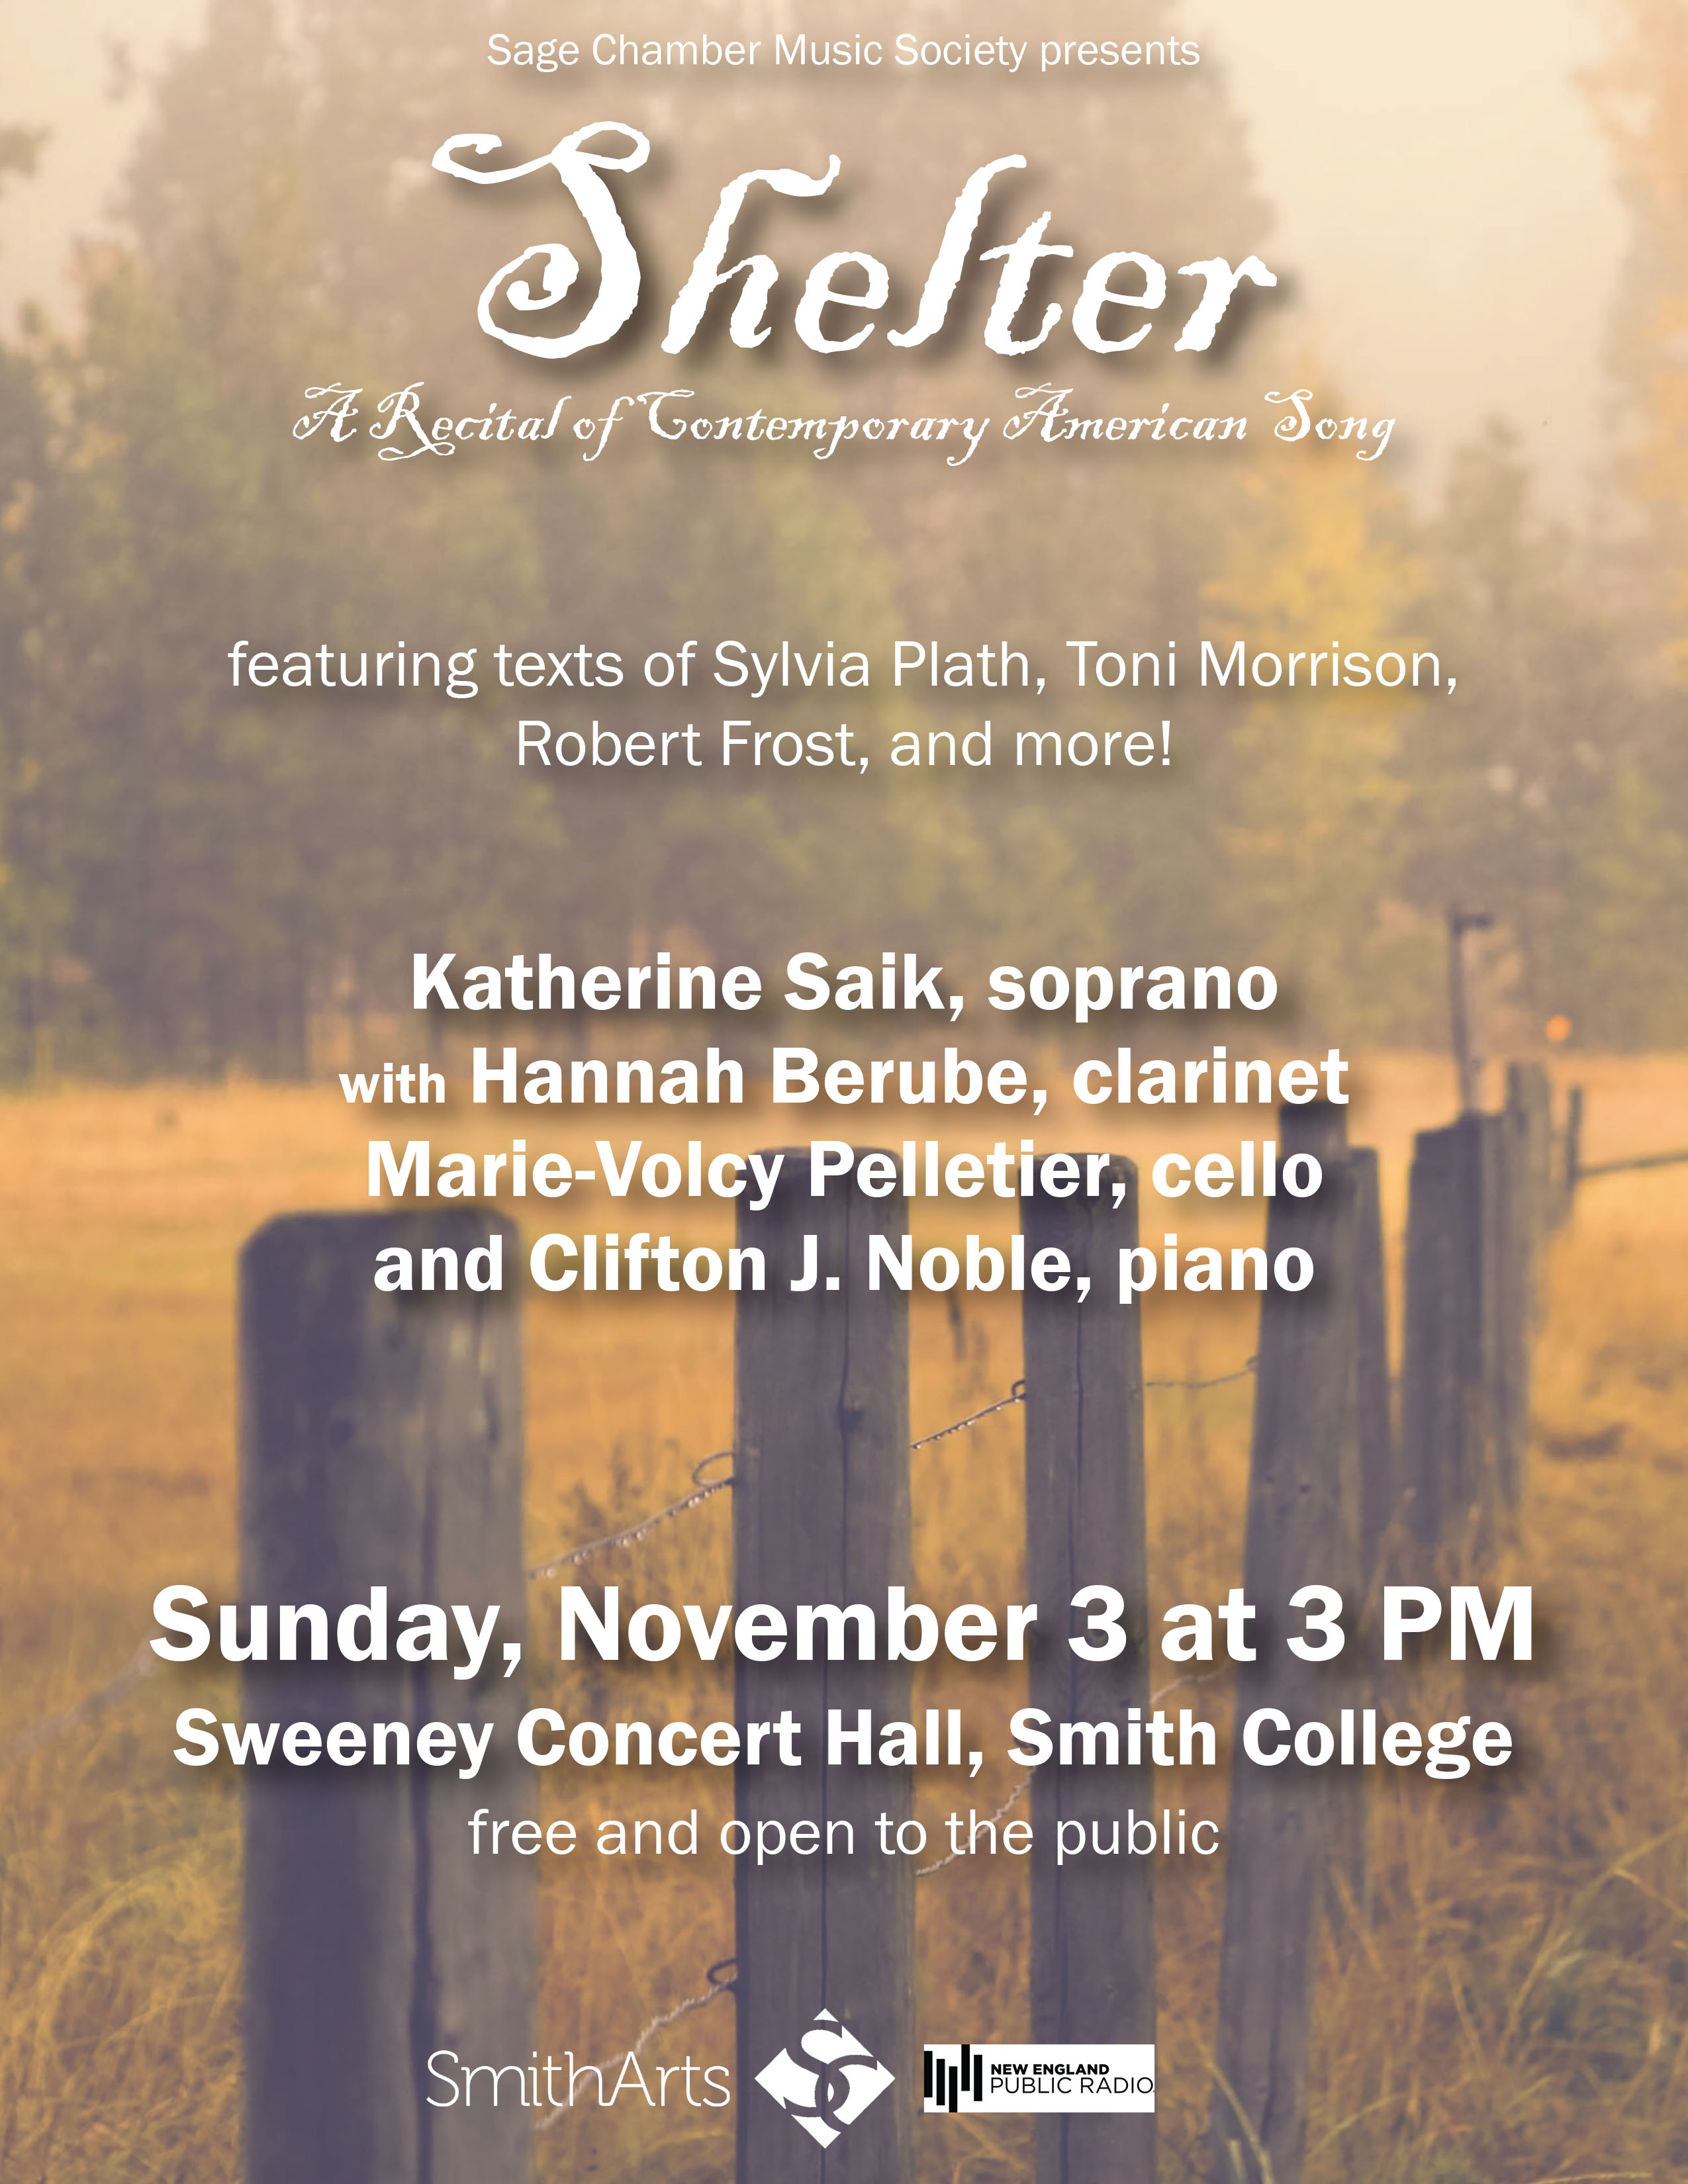 Shelter: A Recital - featuring texts of Sylvia Plath, Toni Morrison, Robert Frost, and more! Sunday Nov 3, 3 p.m. Sweeney Concert Hall. Free and open to the public.